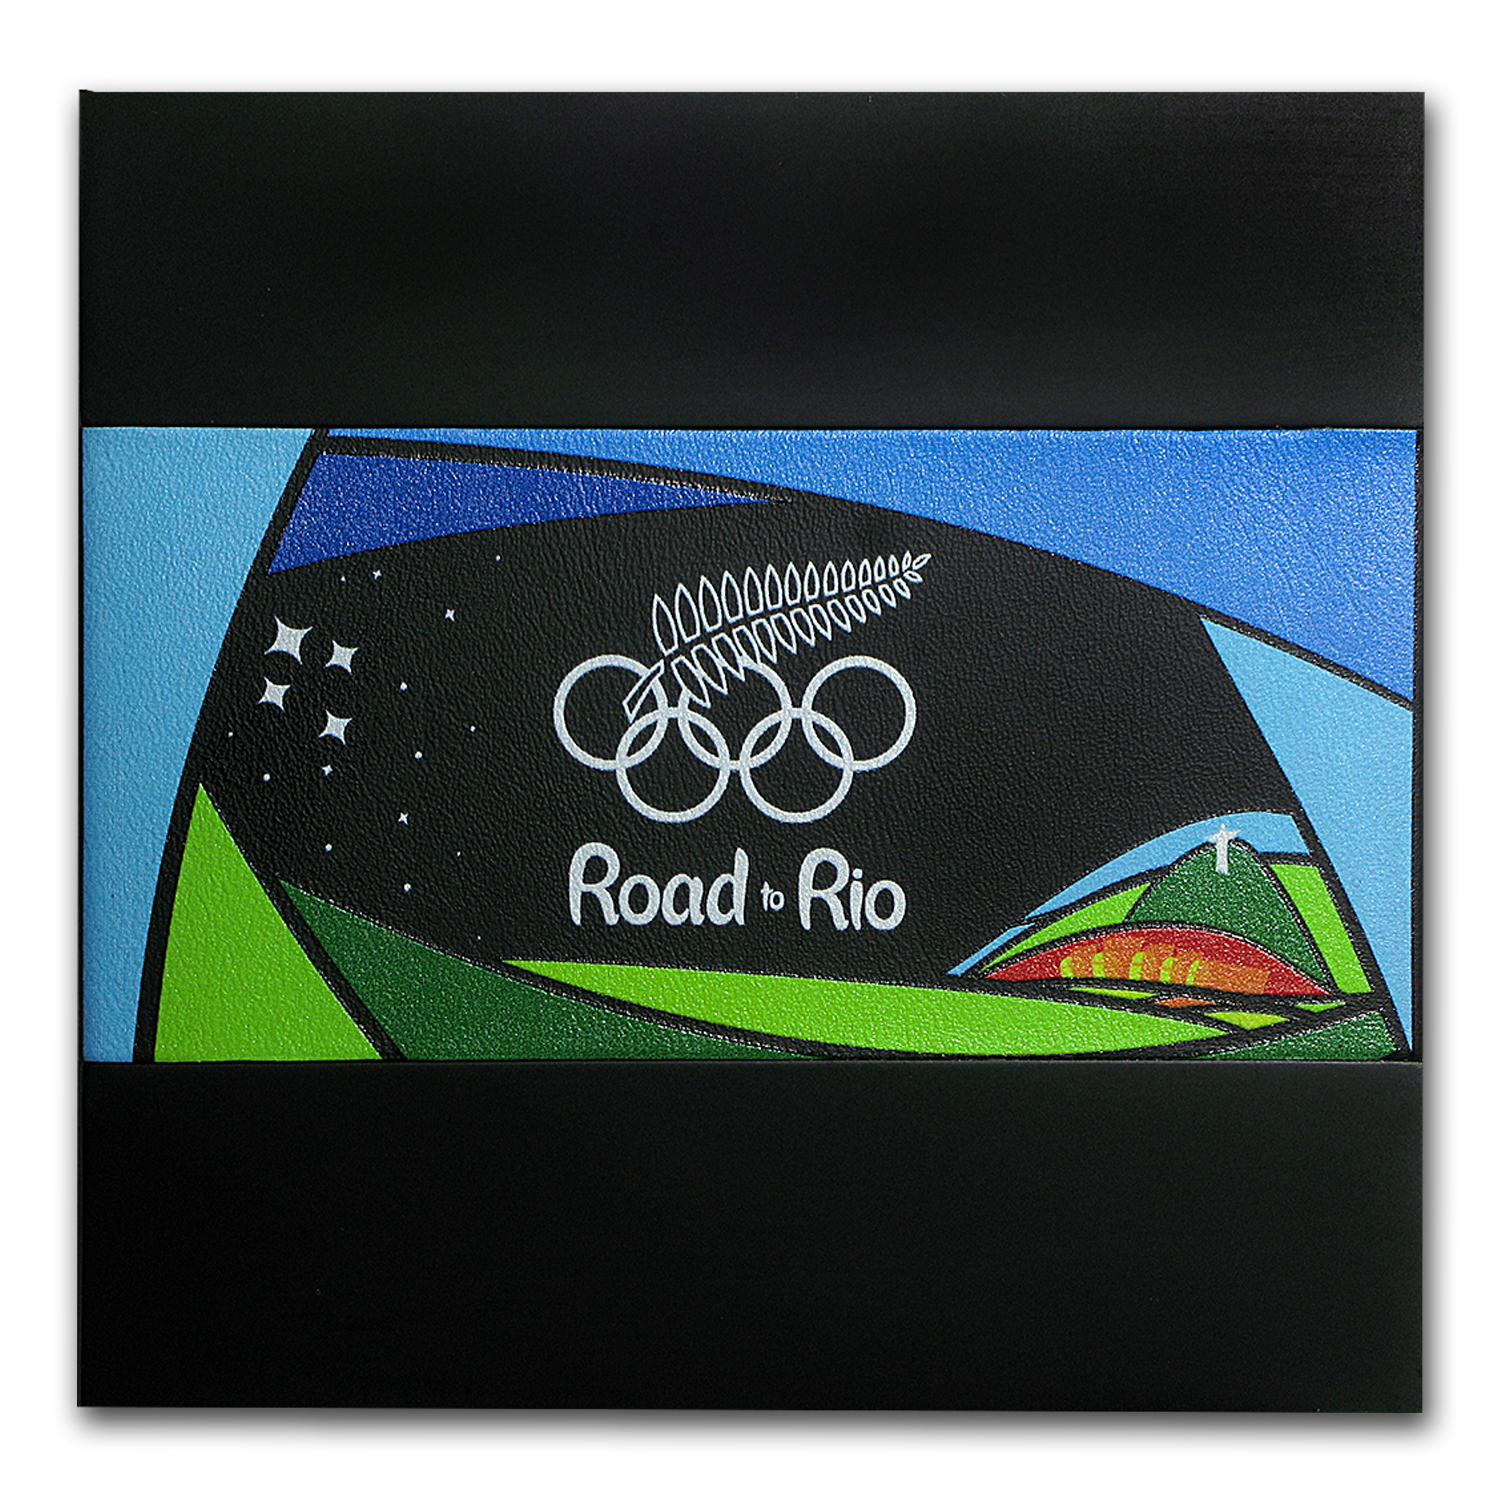 2016 New Zealand 1 oz Silver $1 Road to Rio Olympic Coin